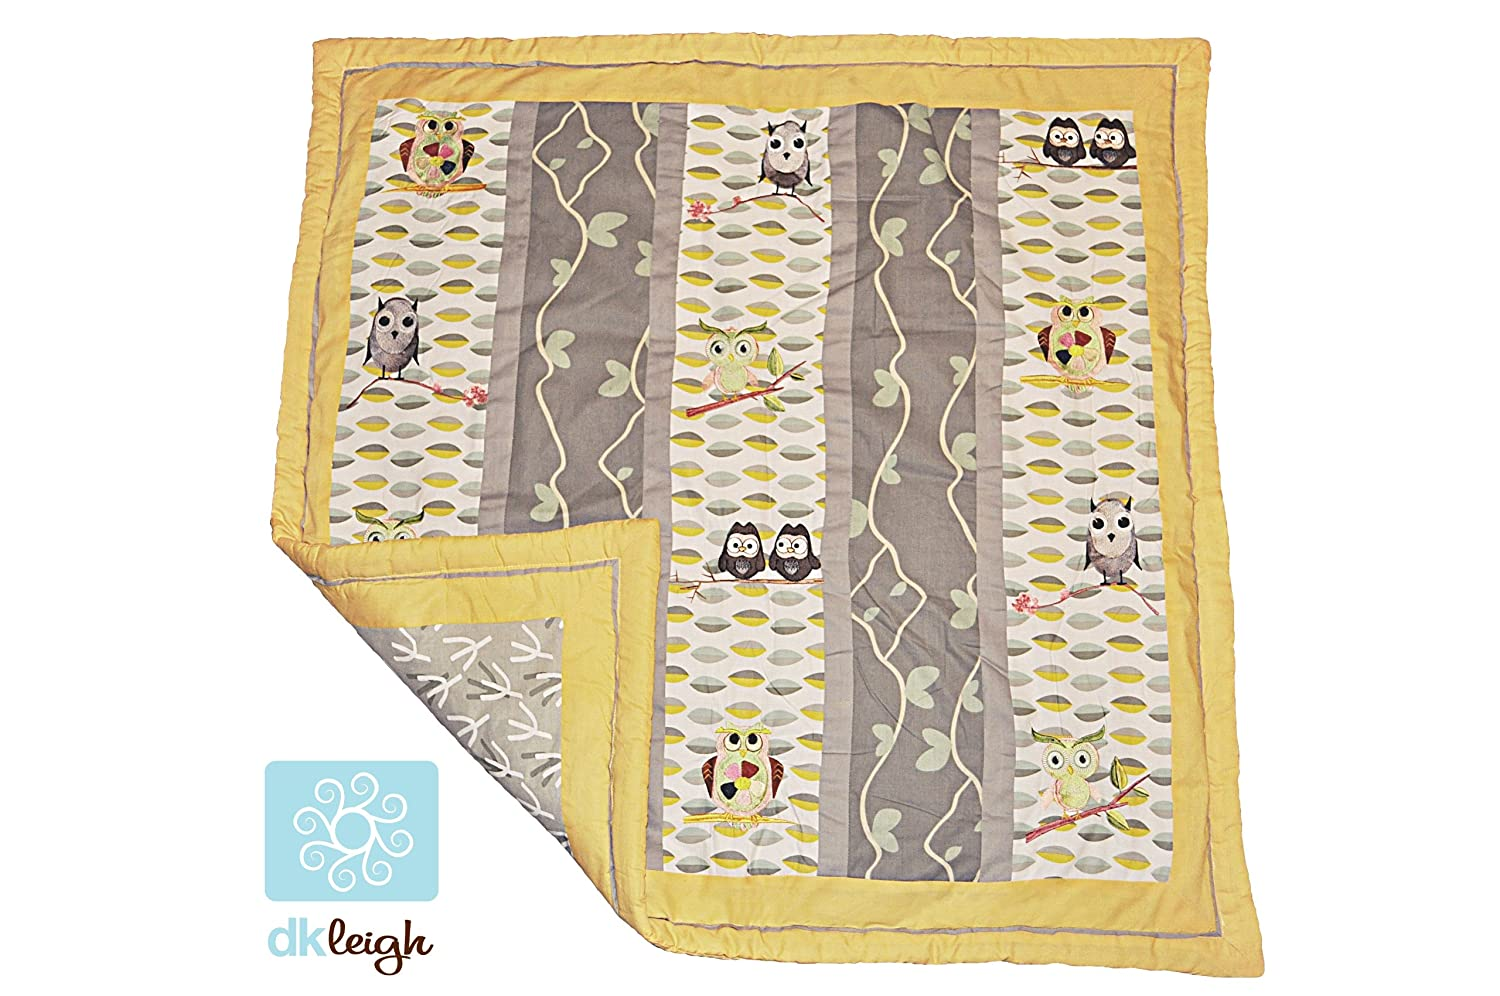 Leigh gender neutral 10pc owl baby crib bedding set grey yellow green - Amazon Com Dk Leigh Owl 7 Piece Gender Neutral Crib Bedding Set Yellow Green Owl Baby Crib Bedding Sets Baby